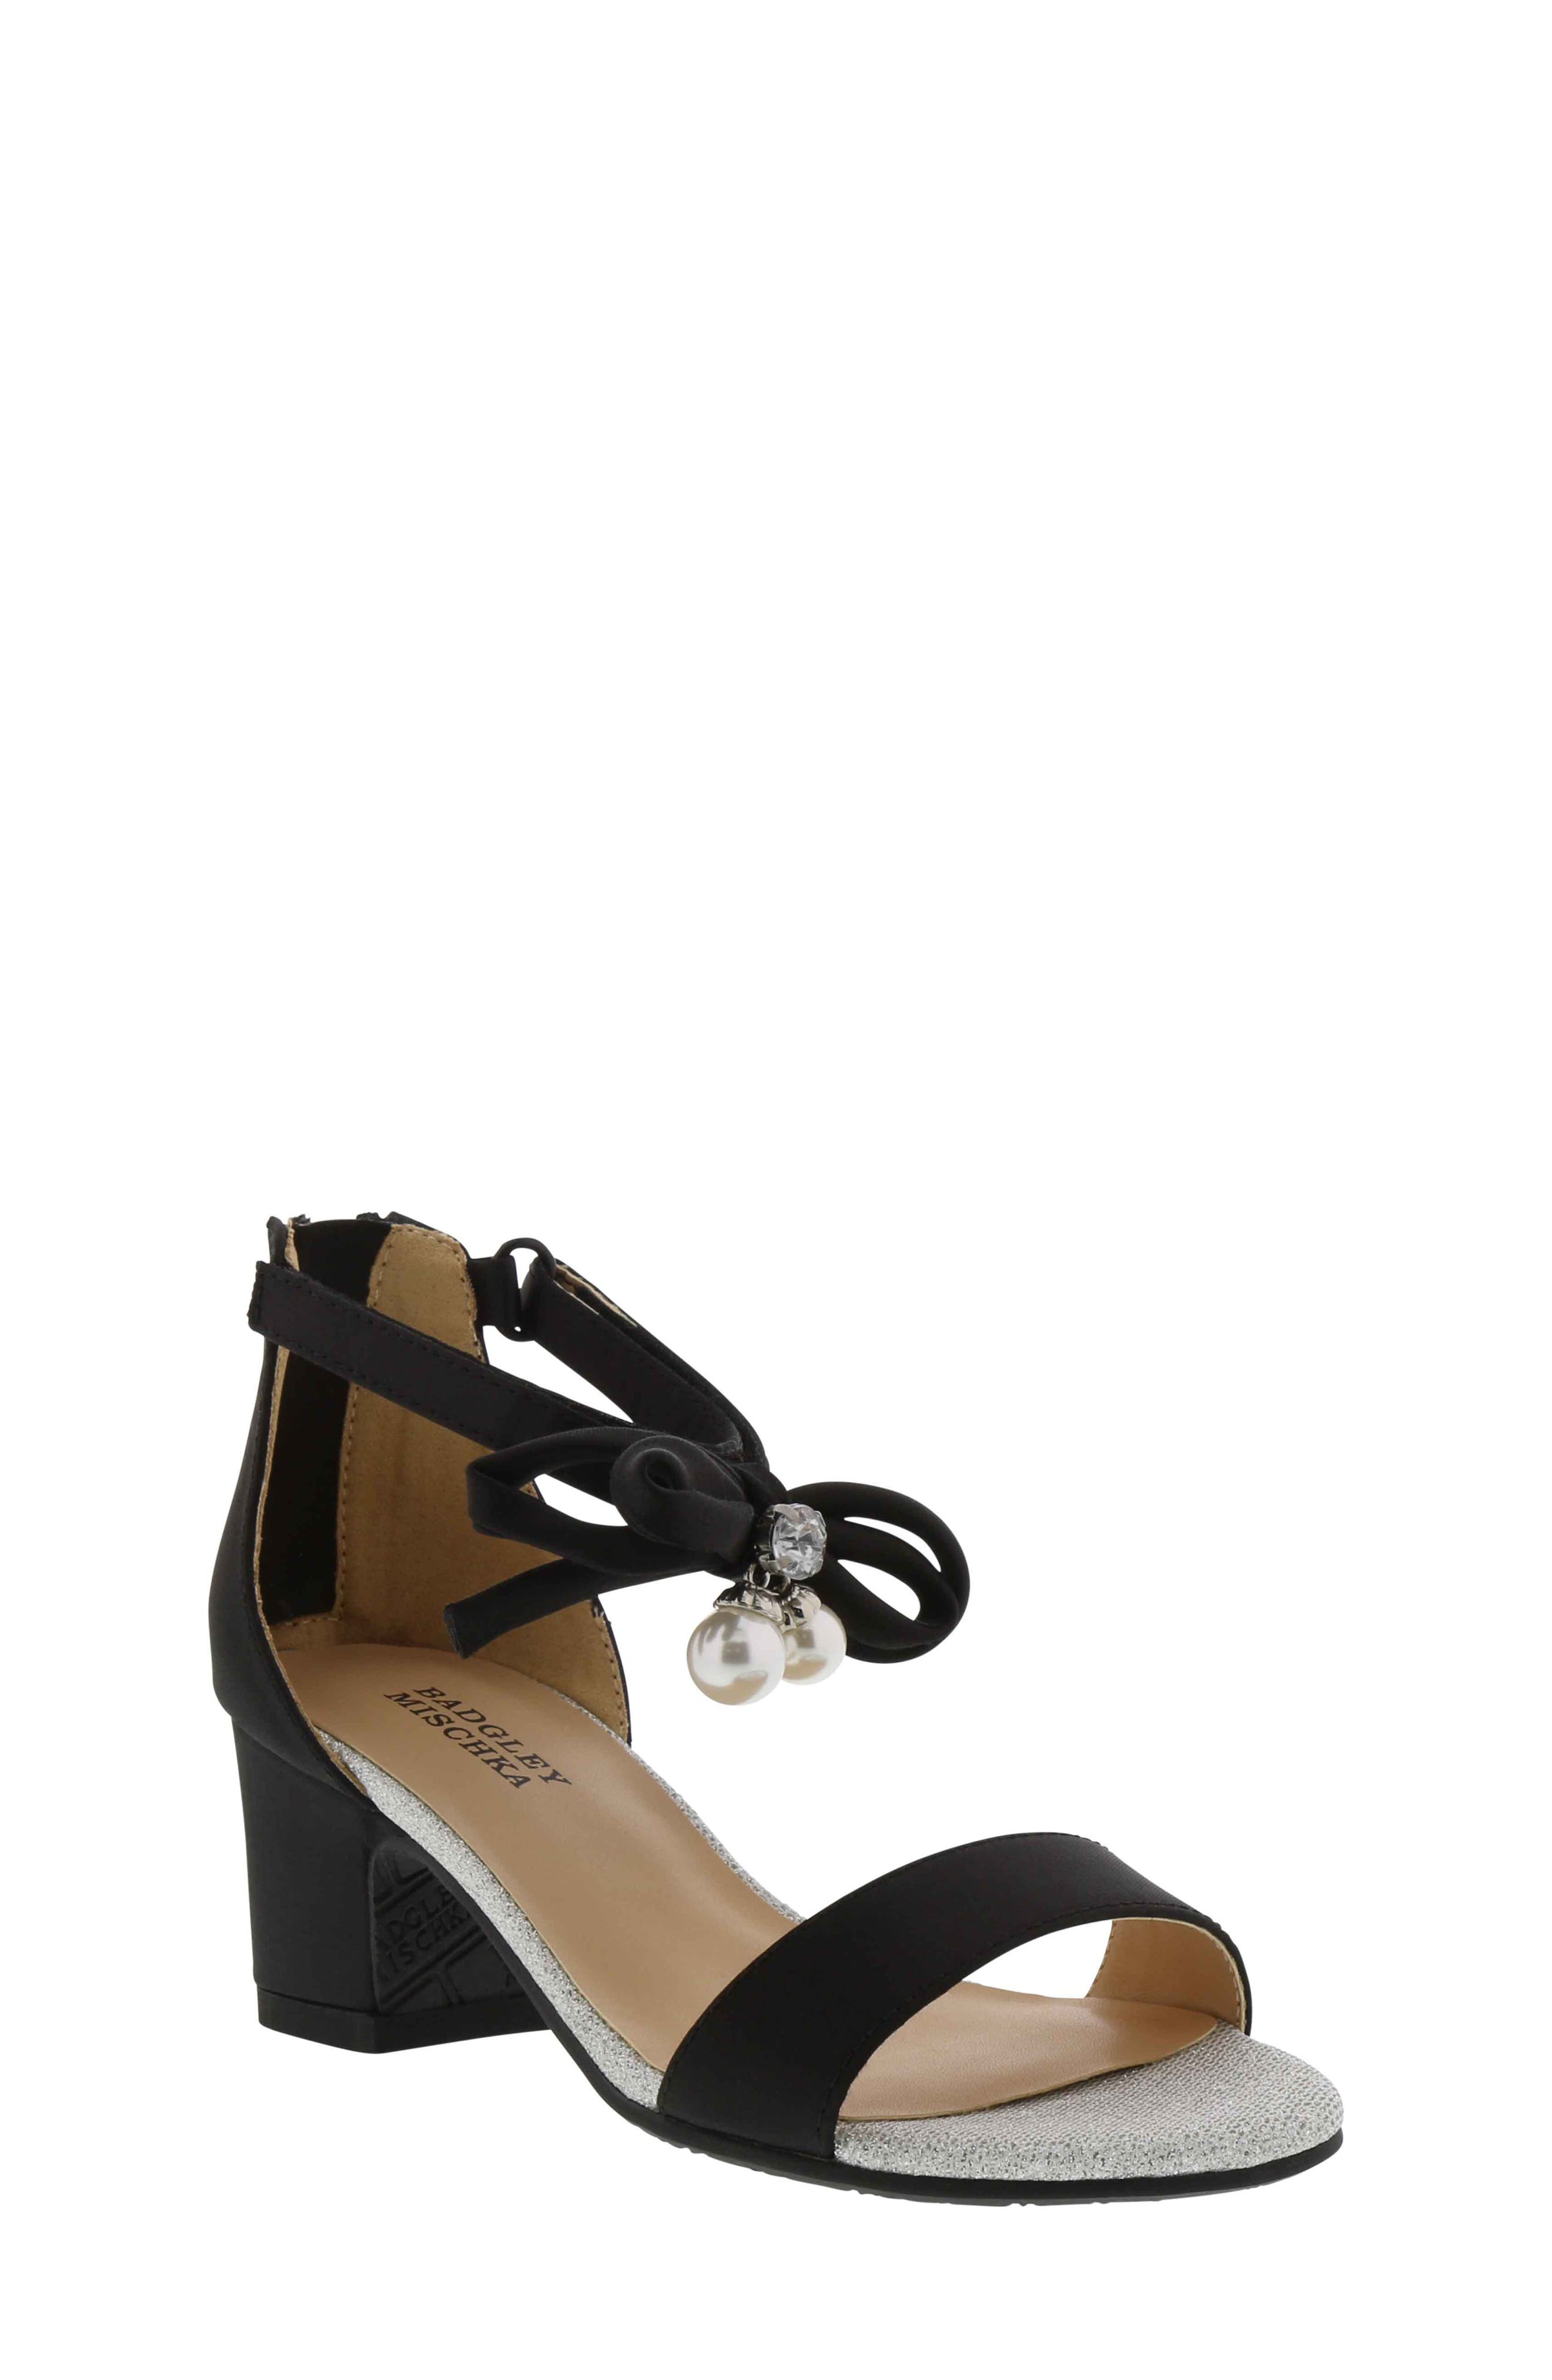 Pernia Embellished Sandal,                         Main,                         color, BLACK